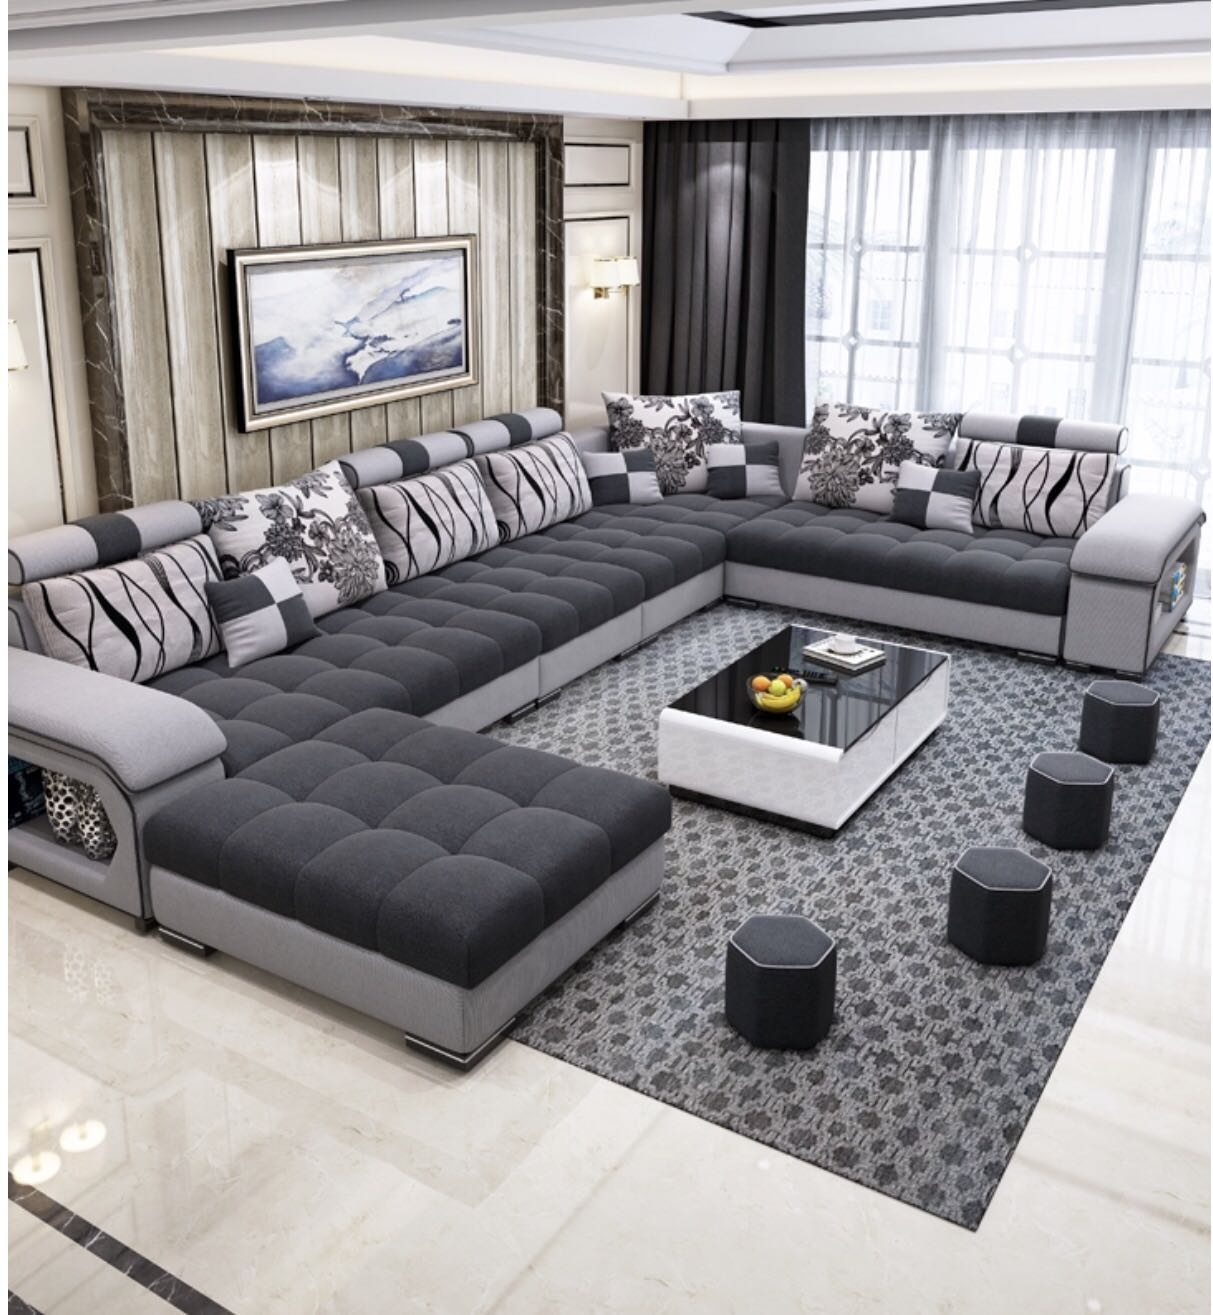 Furniture Factory Provided Living Room Sofas/fabric Sofa Bed Royal Sofa Set 7 Seater Living Room Furniture Designs - Buy Living Room Sofas,Sofa Set,Fabrc Sofa Product On Alibaba.com